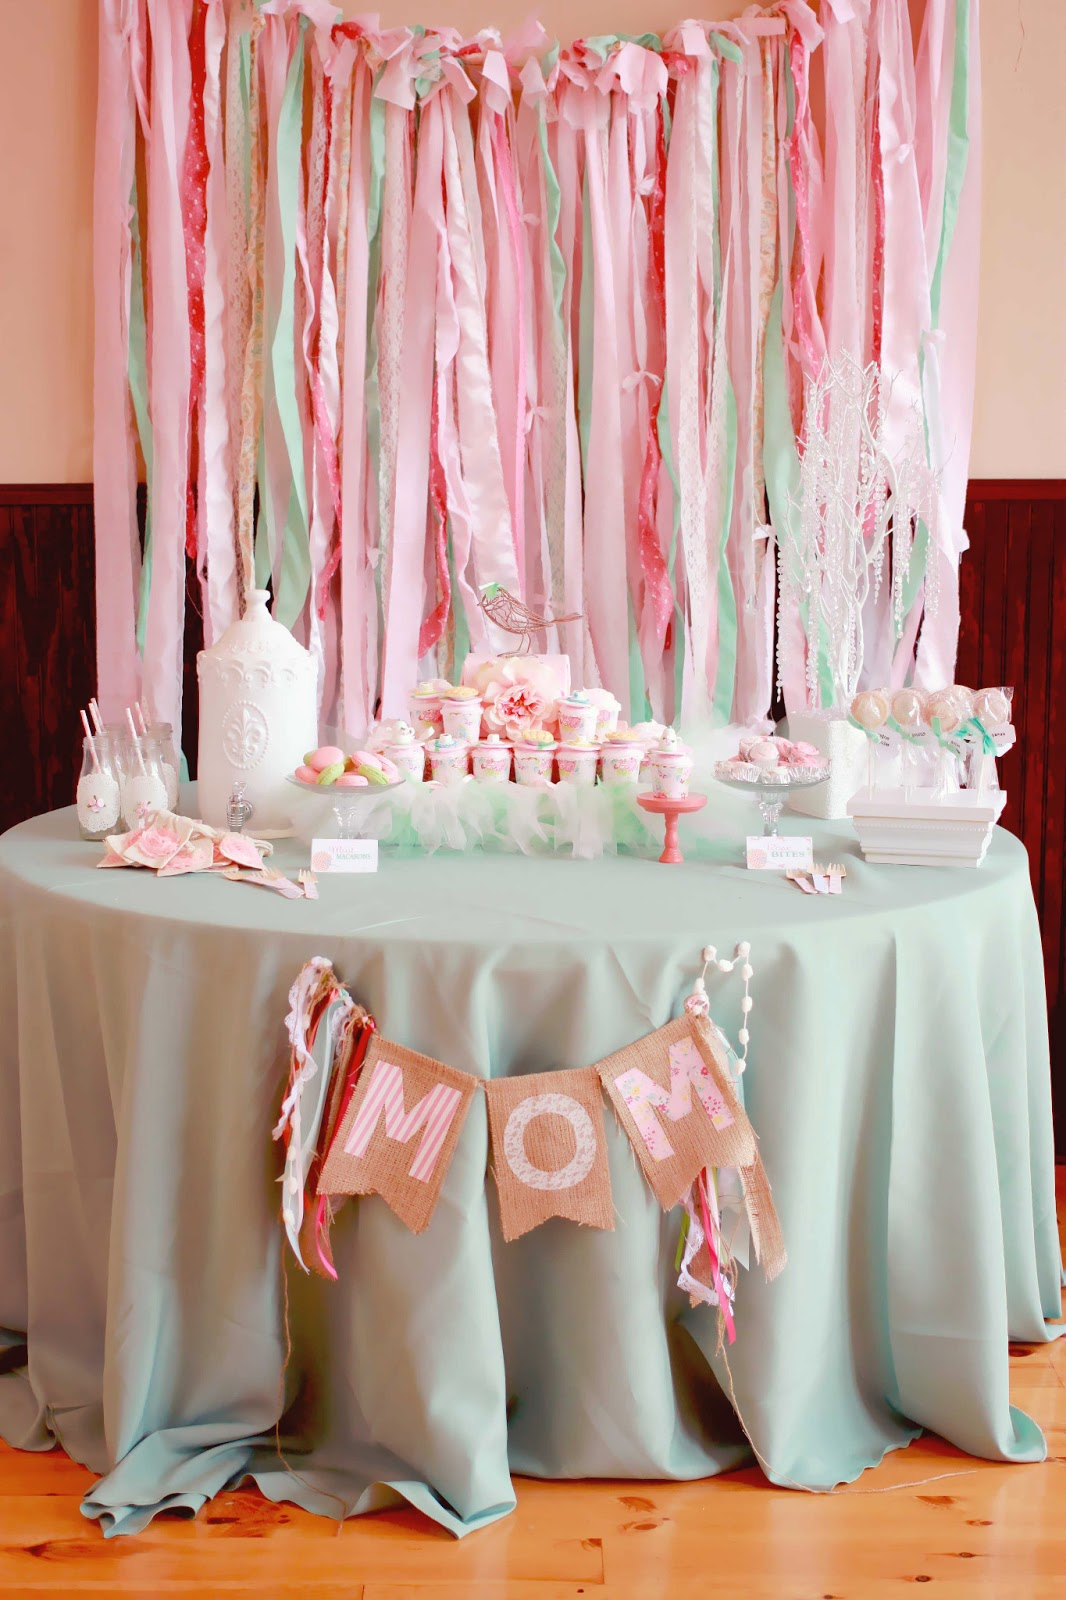 Apr 10, · How to Have a Surprise Party for Your Mom In this Article: Planning the Party Preparing for the Party Executing the Party Community Q&A 17 References Throwing your mom a surprise party is a great way to show her that you care about and appreciate every thing she does for you%(55).